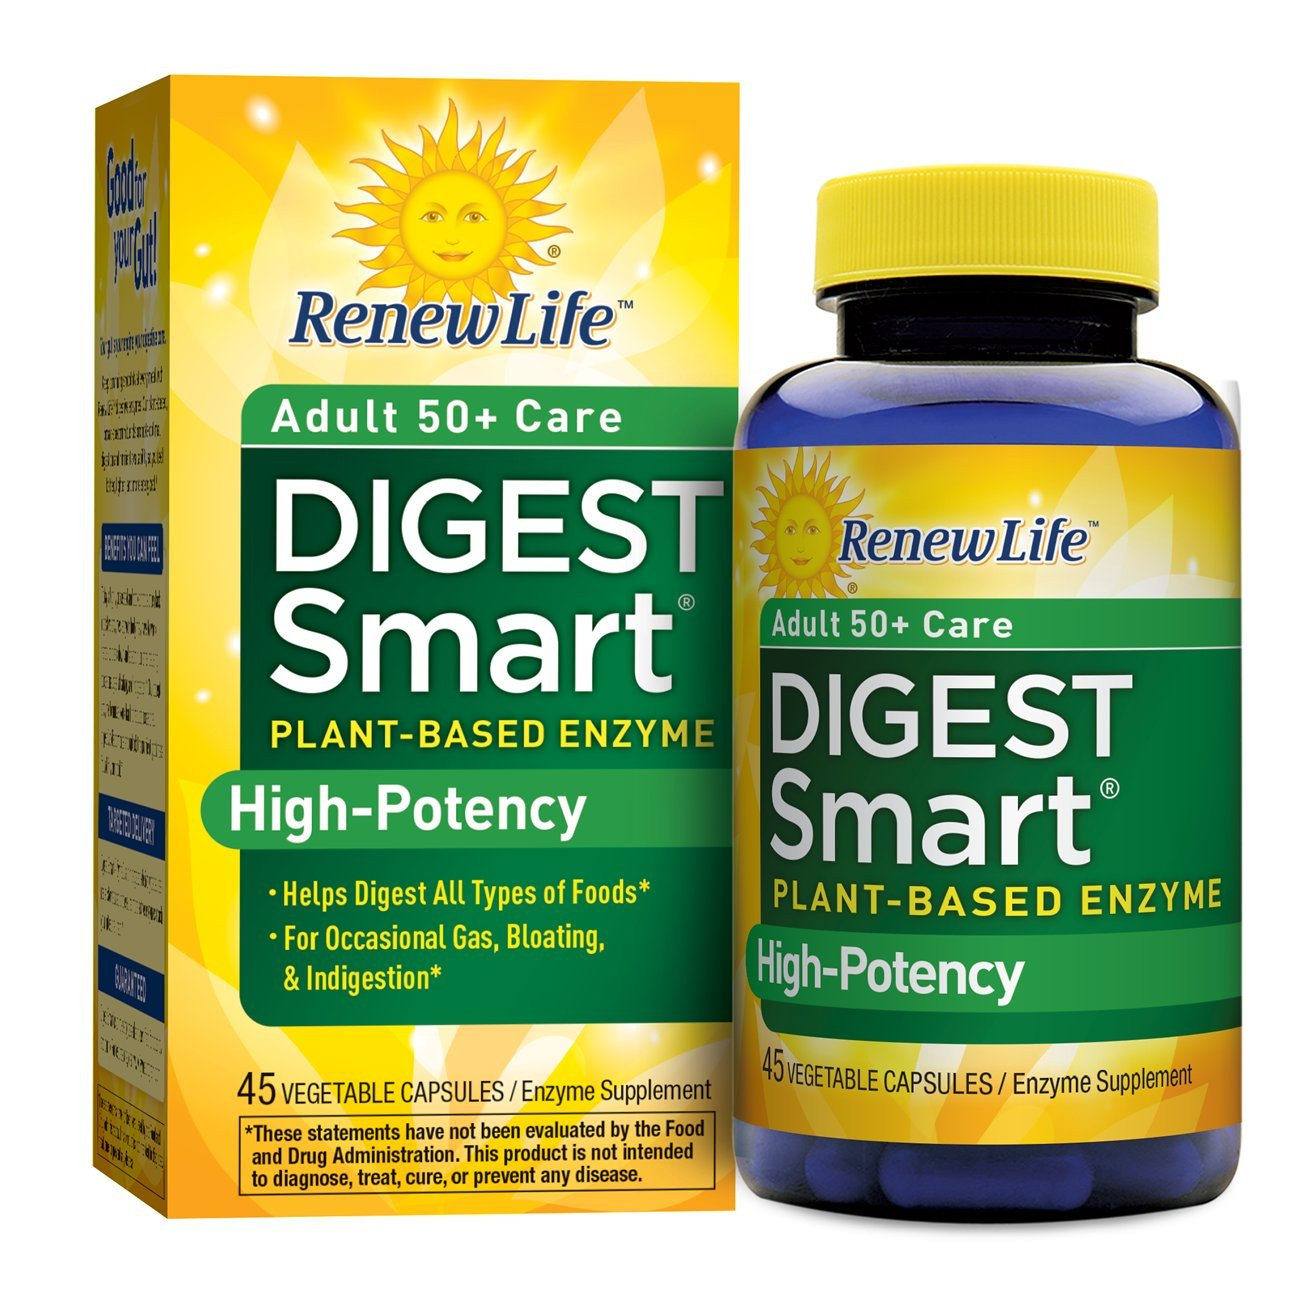 Renew Life - Digest Smart Adult 50+ Care - gas, bloating, and digestive relief - plant-based enzyme supplement - 45 vegetable capsules